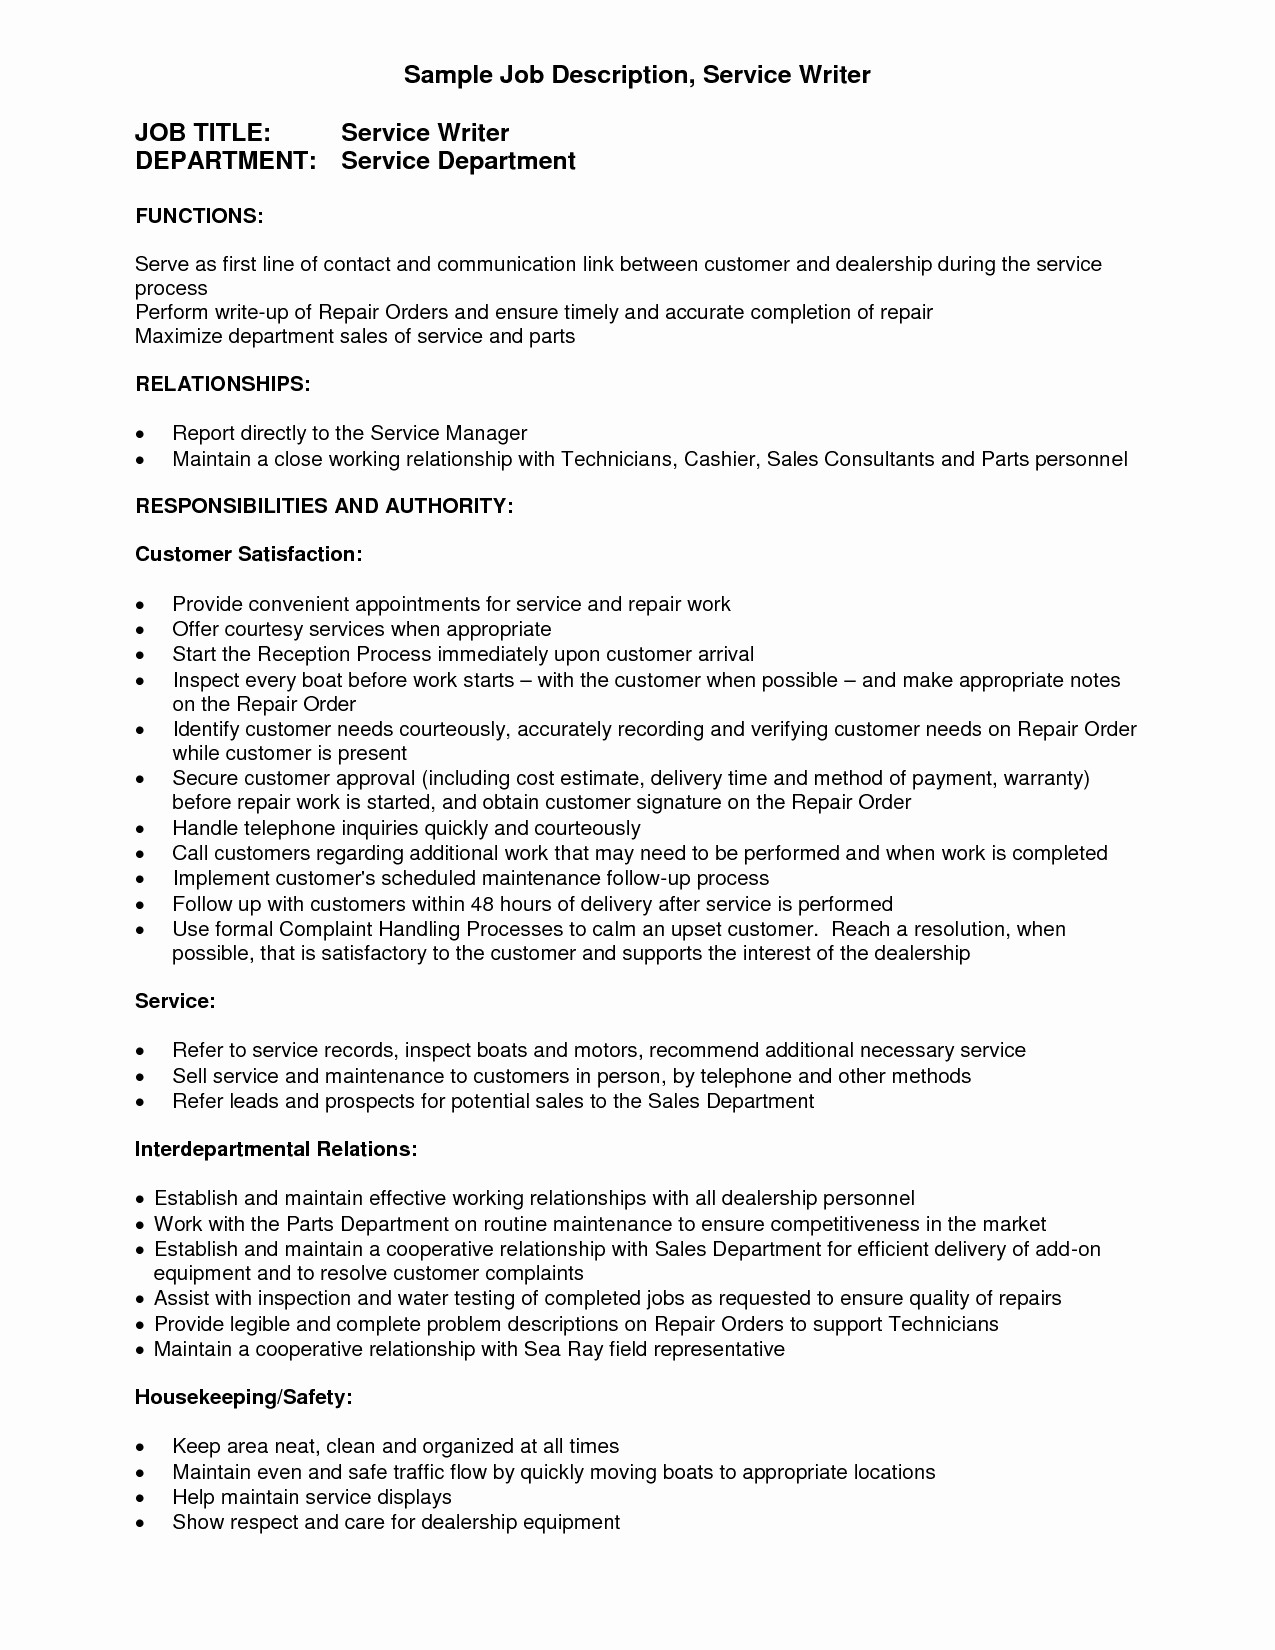 Best Resume Services - Professional Resume Writers Cost Lovely Awesome Grapher Resume